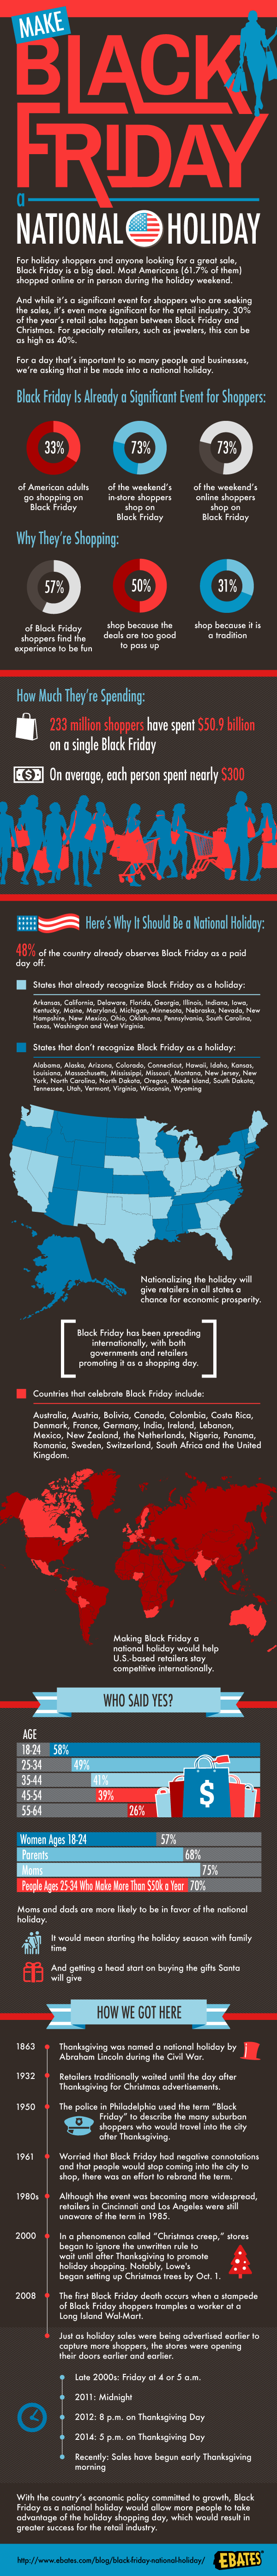 Make Black Friday a National Holiday